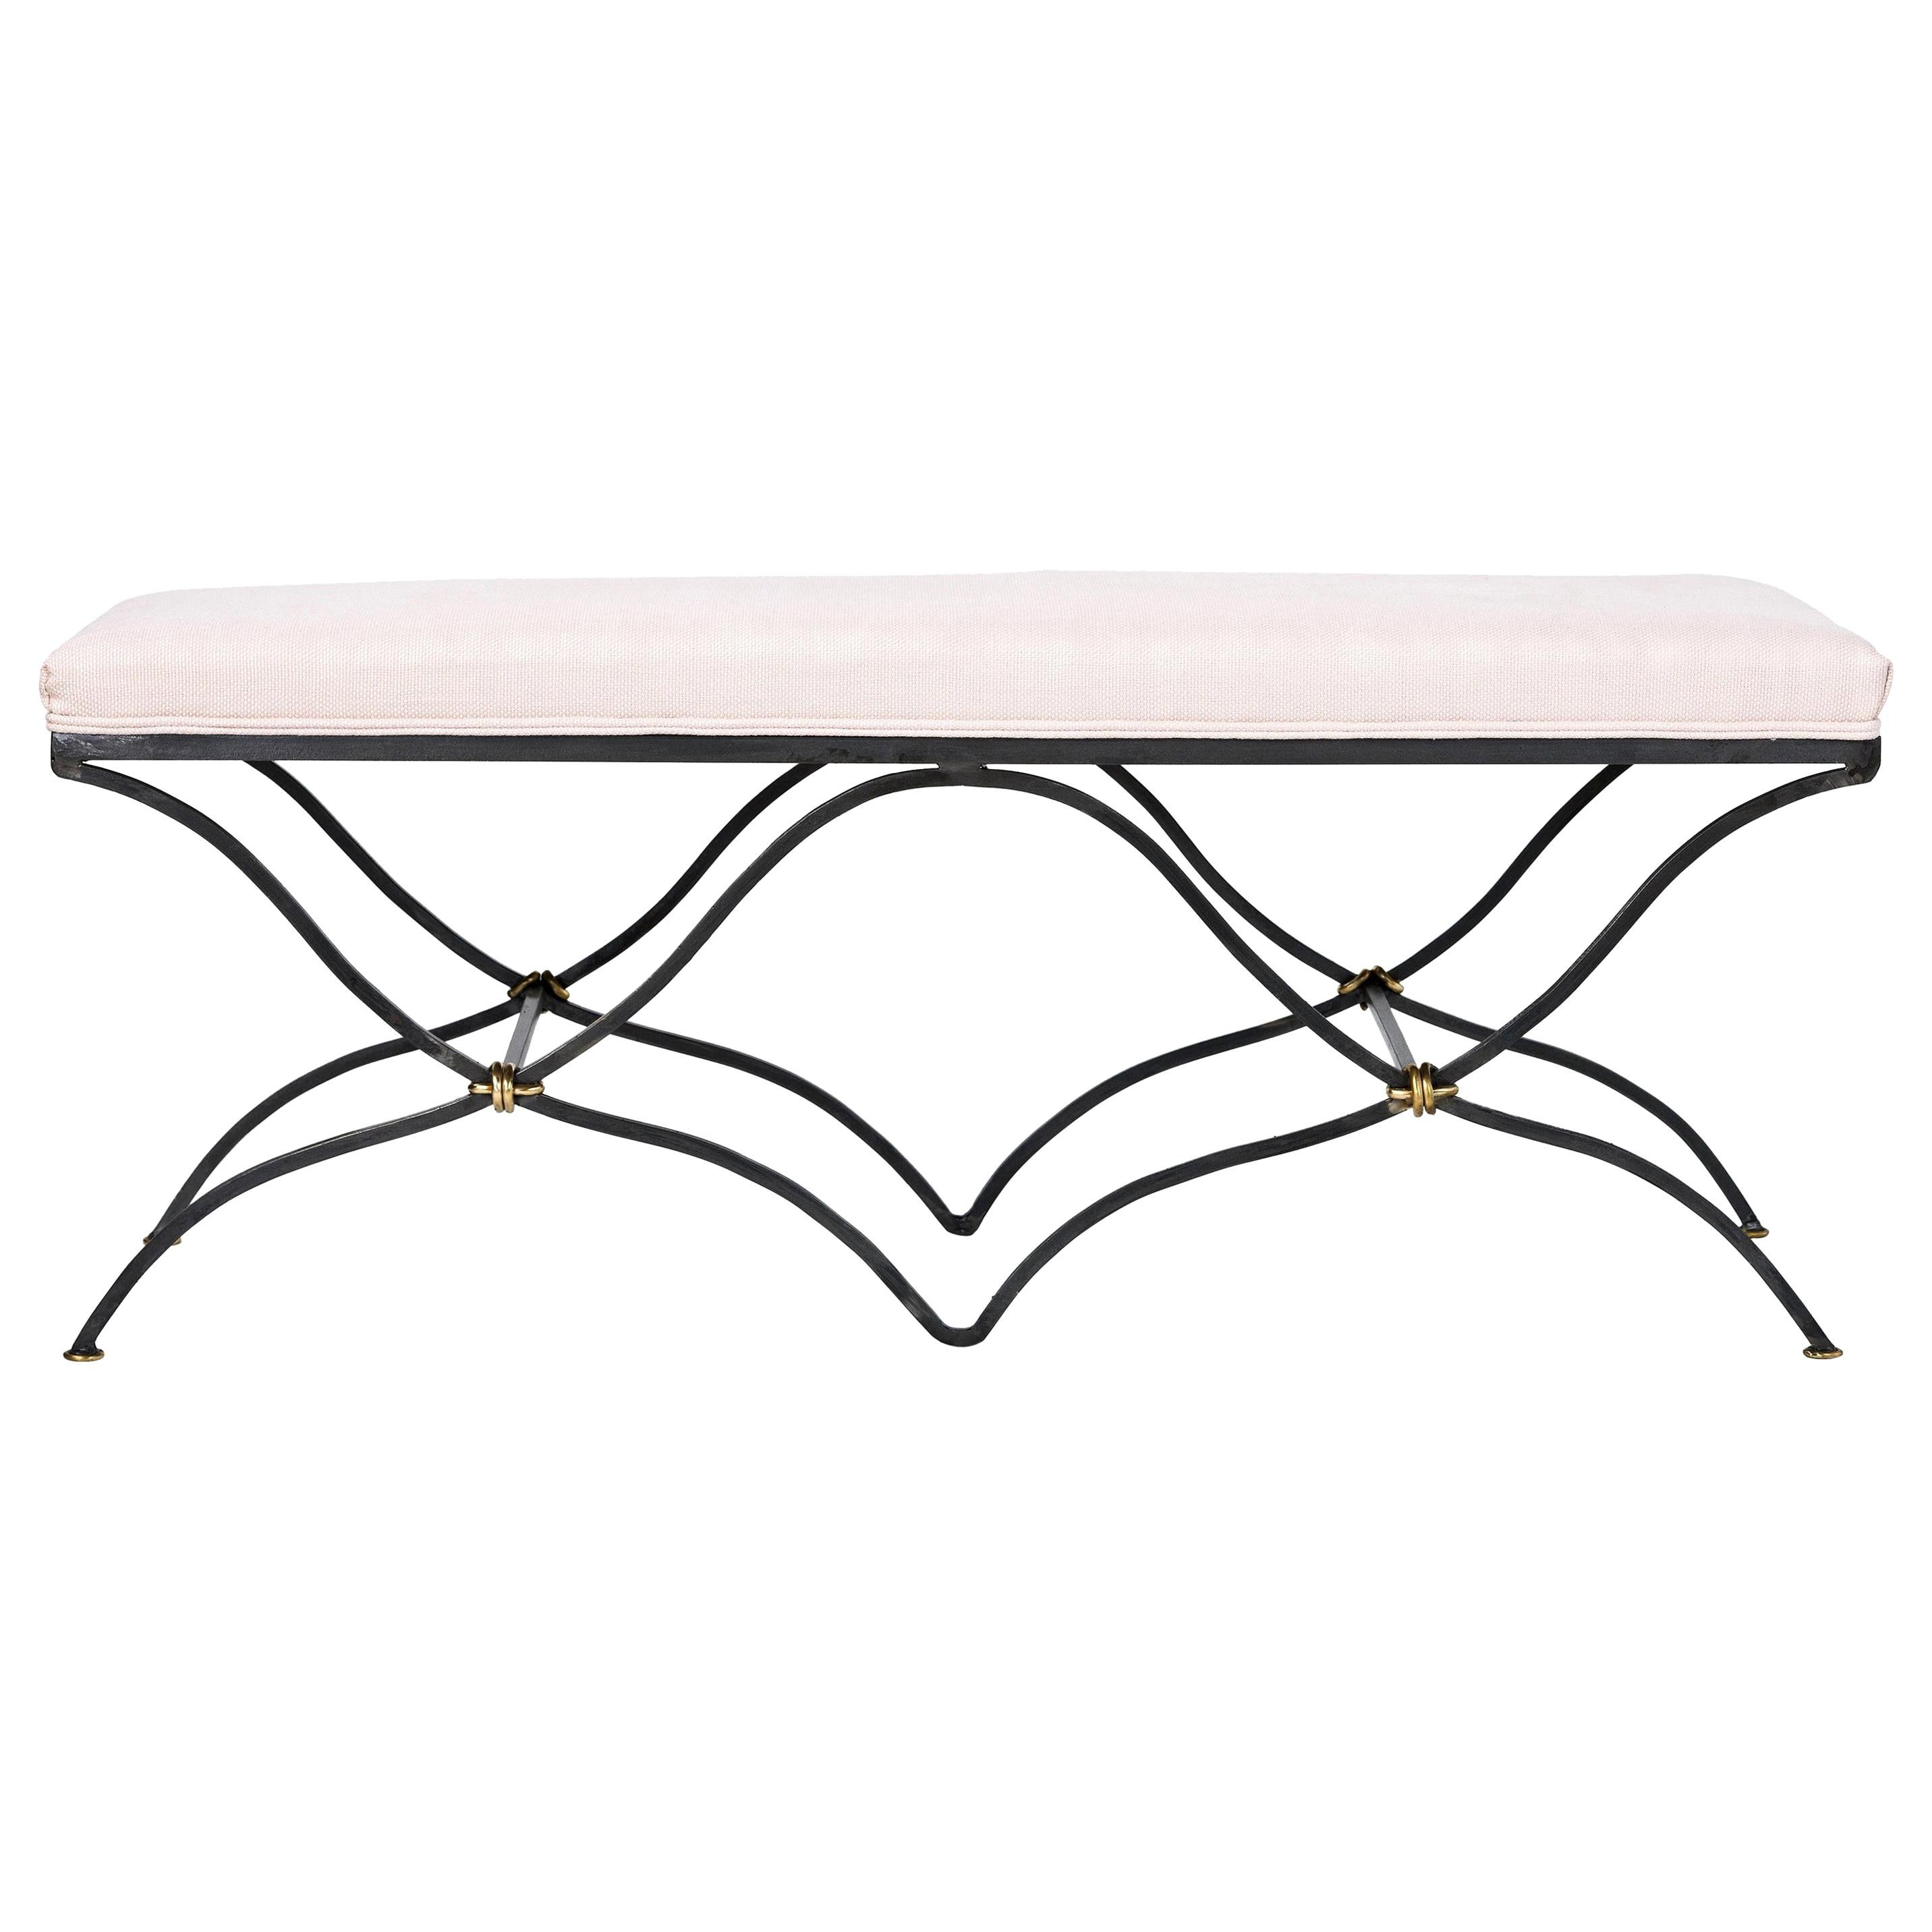 Contemporary Iron Bench Upholstered in Linen